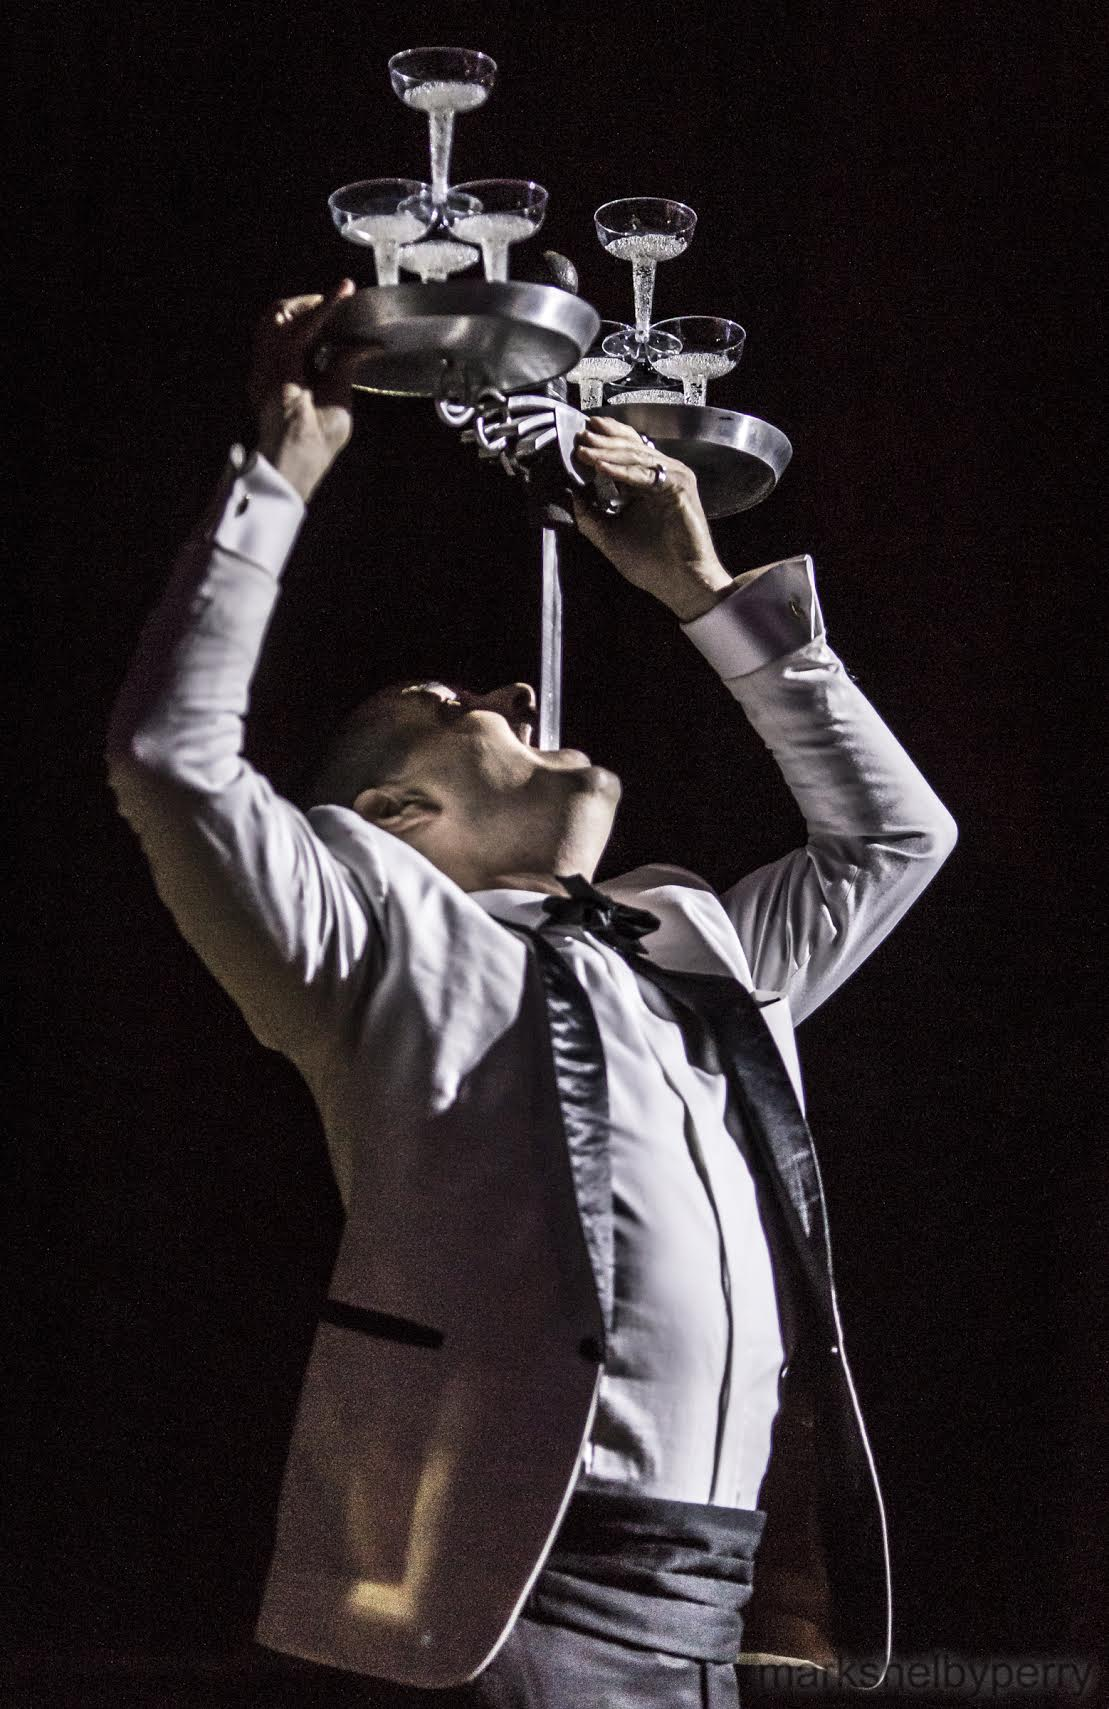 Champagne Tower Sword Swallower